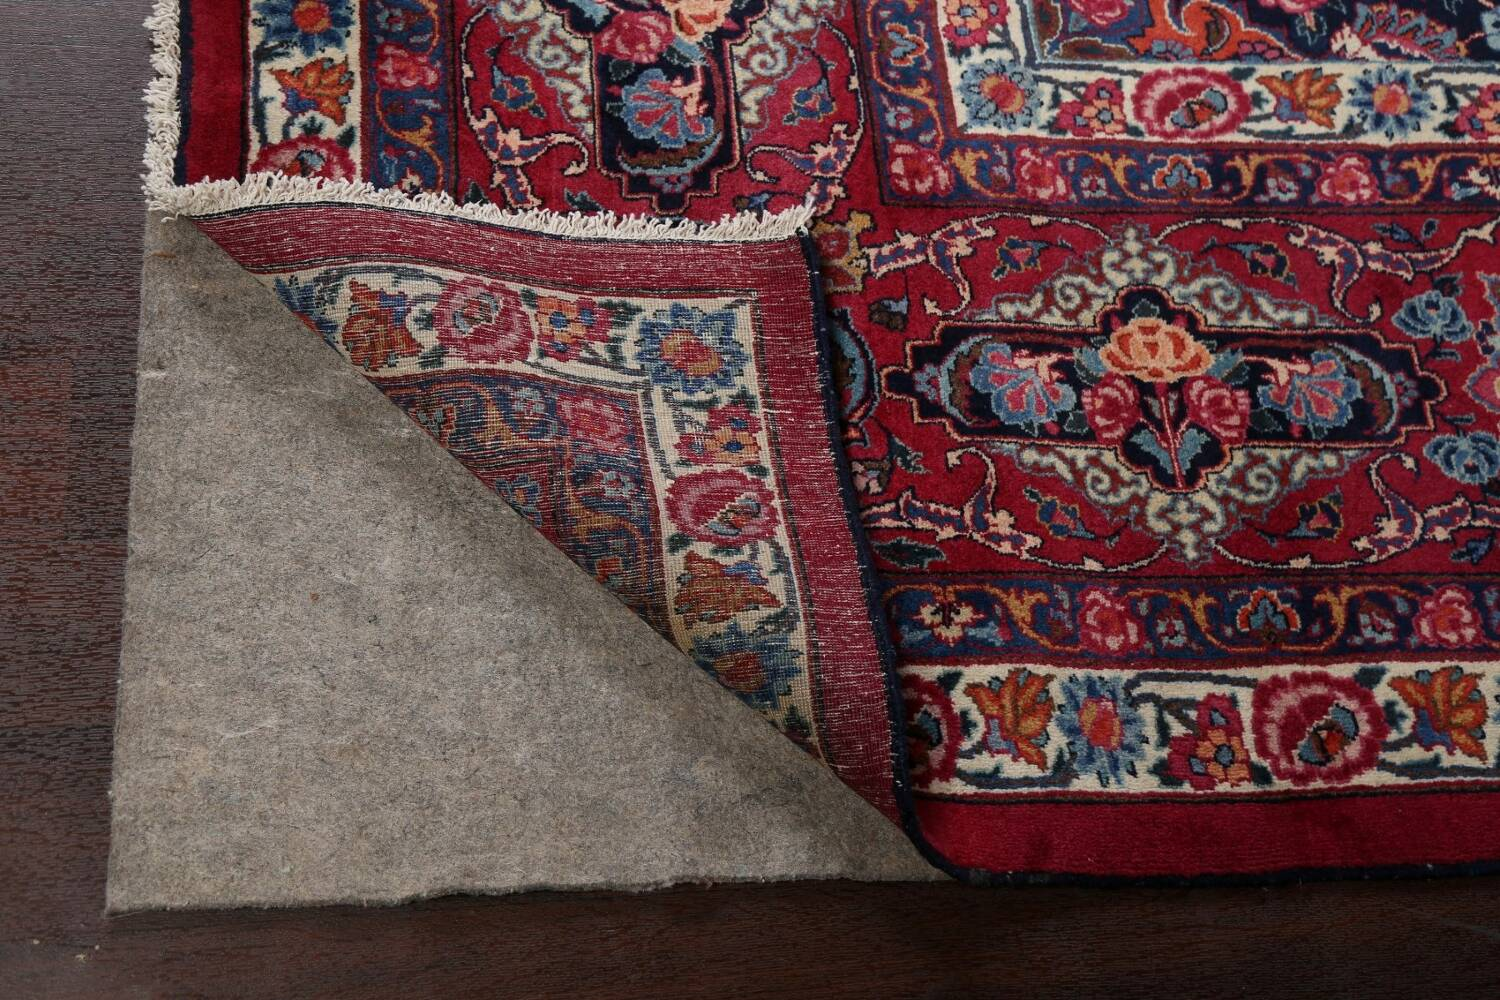 Antique Vegetable Dye Mood Persian Red Rug 11x15 image 7